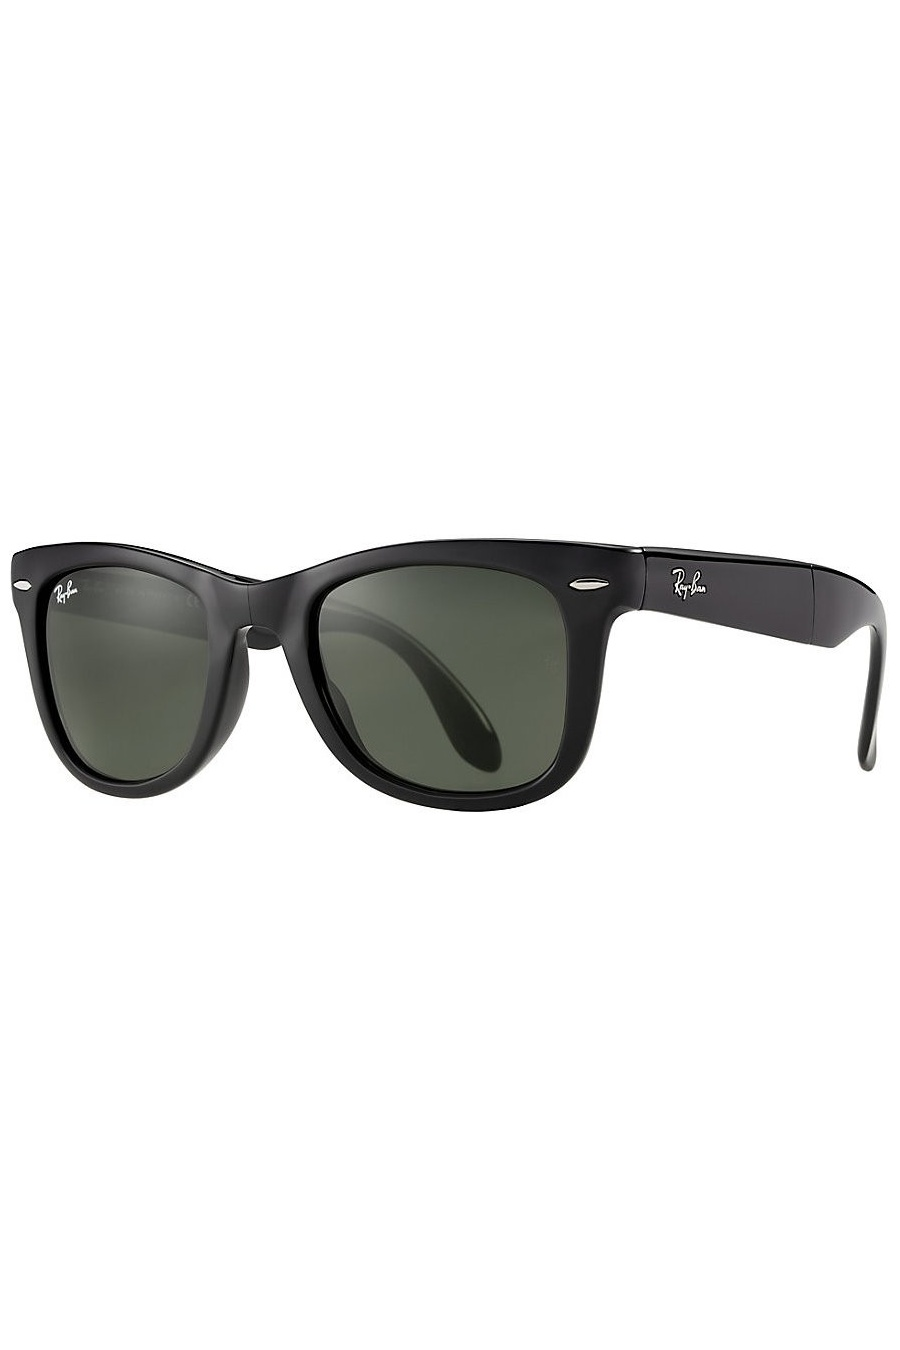 RAY BAN RB4105 - 601 50 WAYFARER FOLDING